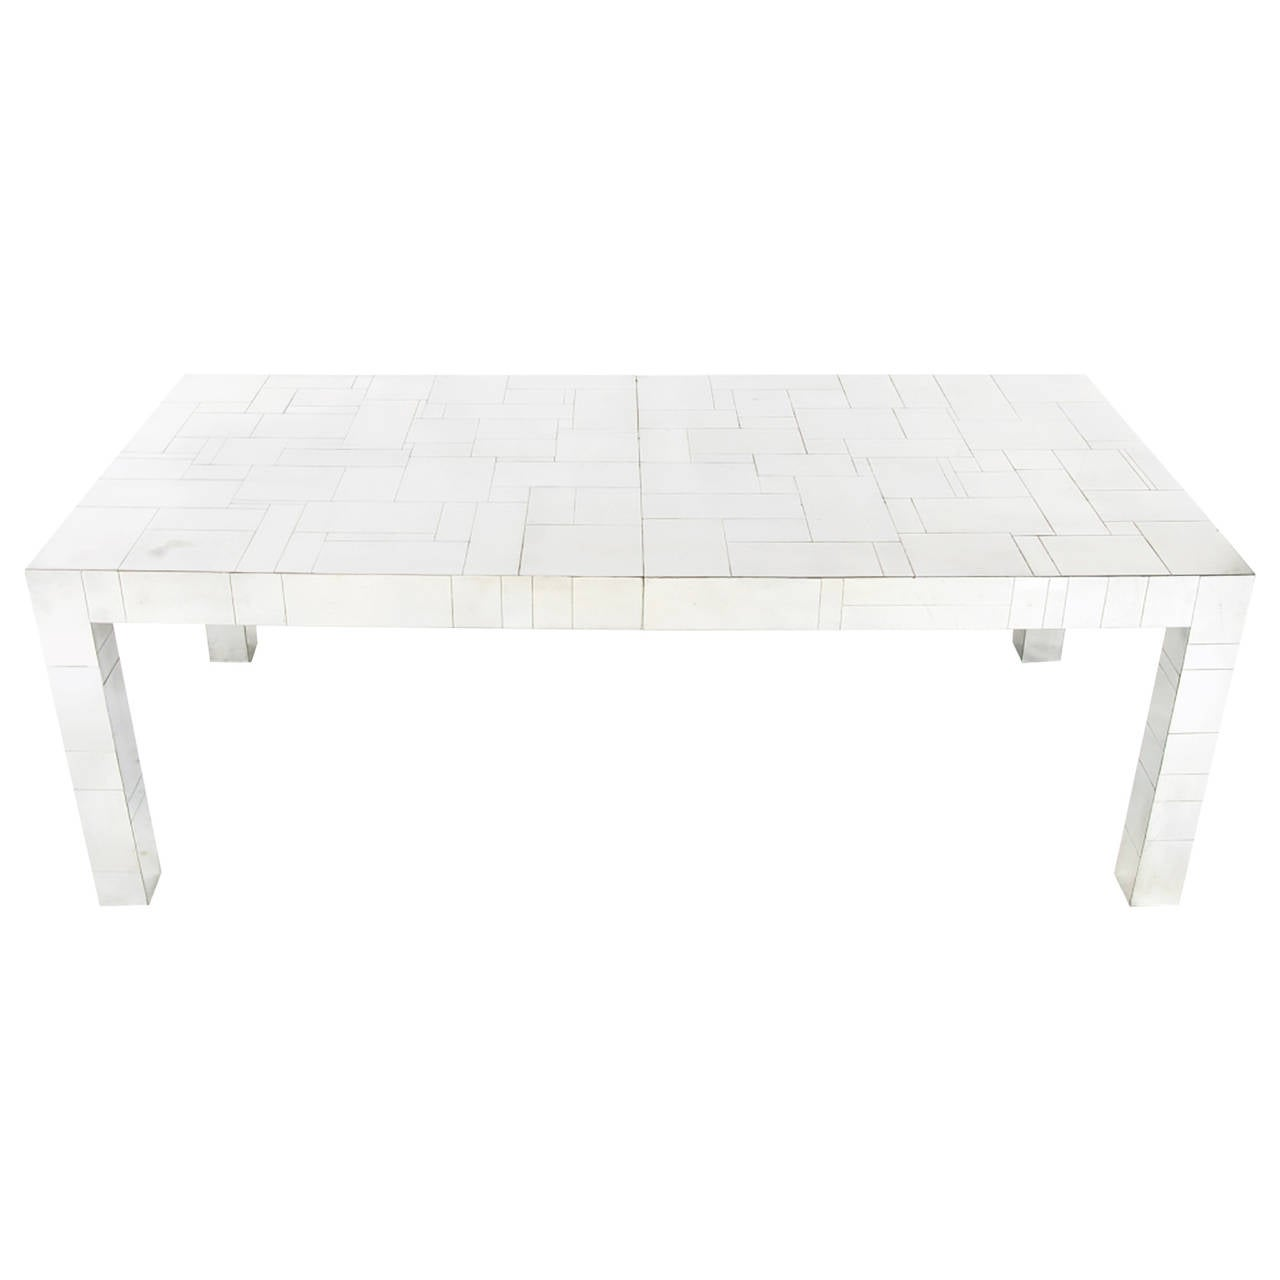 Paul Evans Cityscape Long Dining Table 1